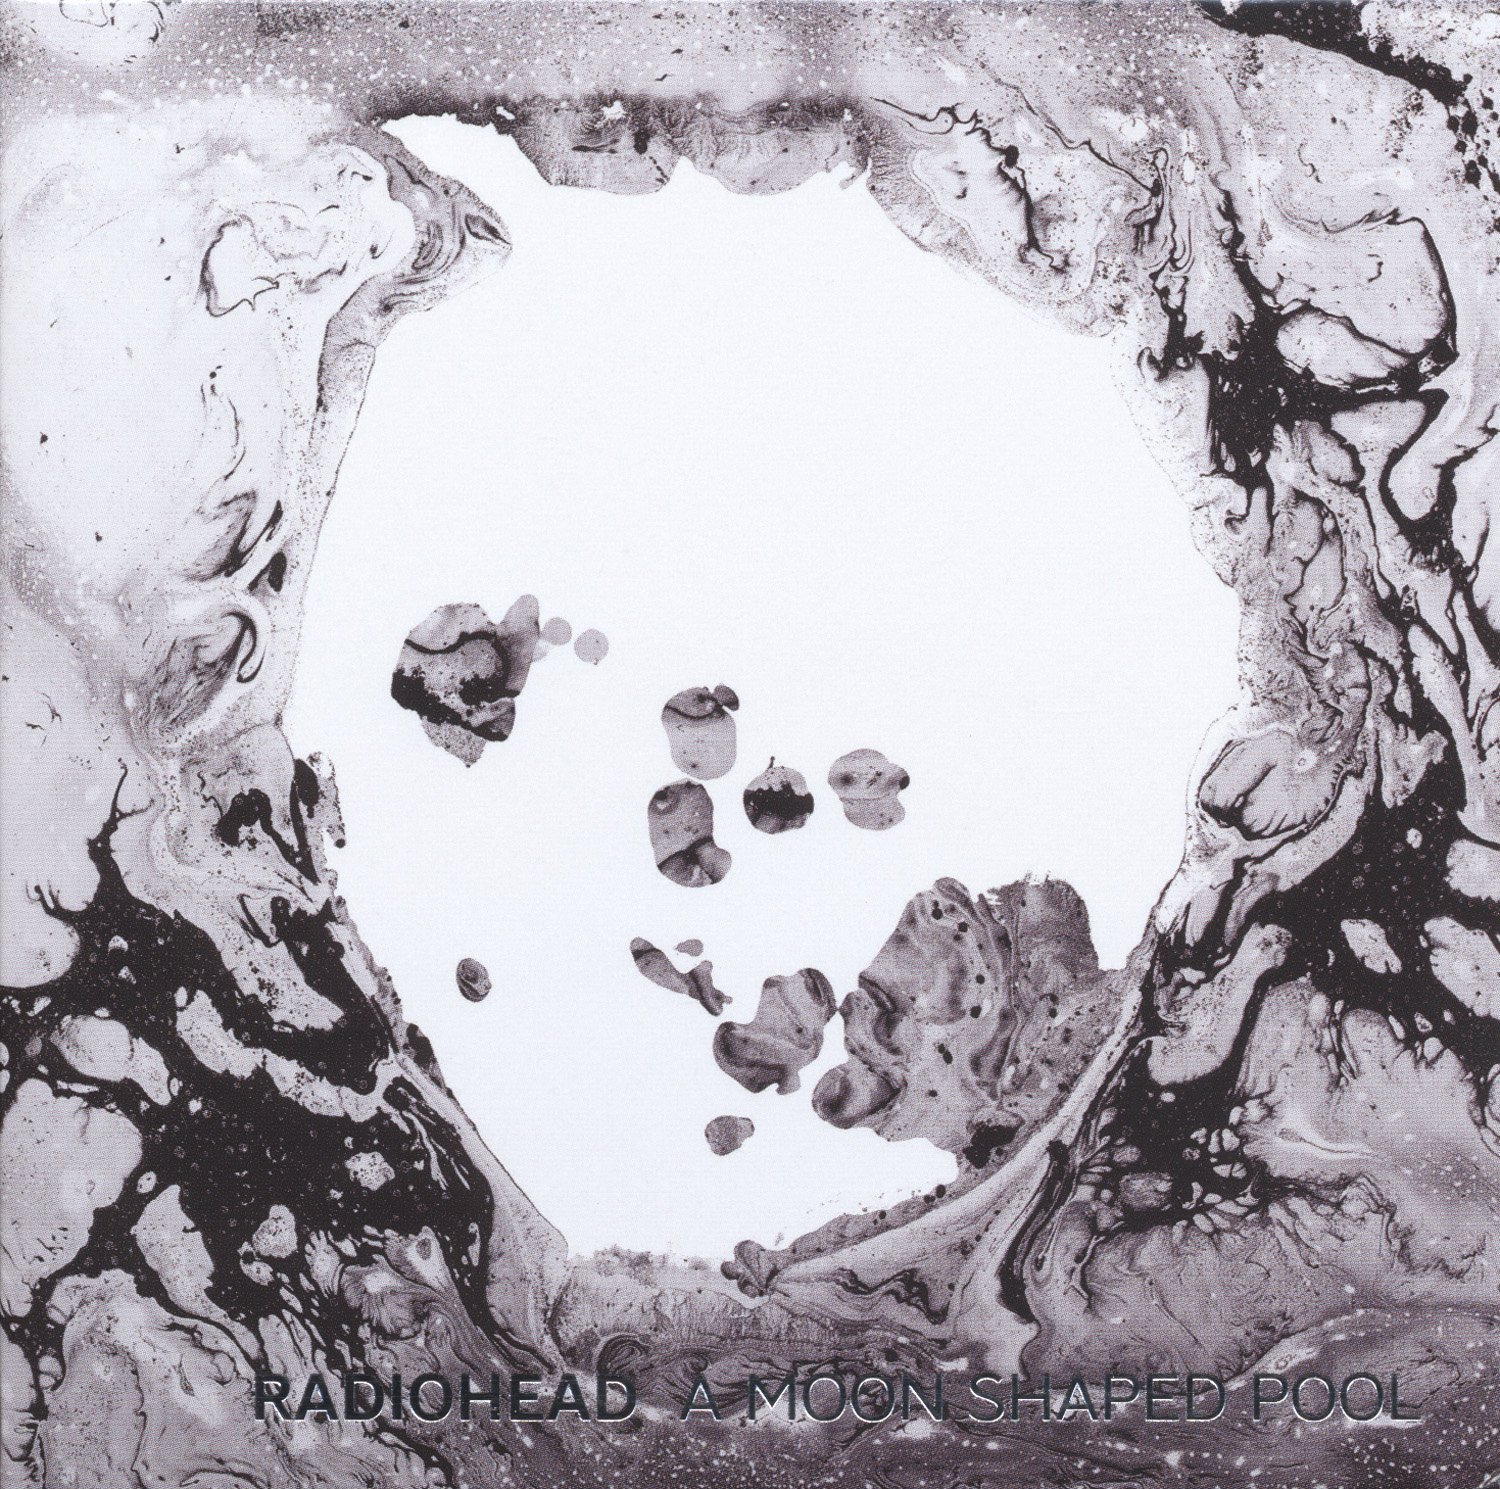 boom reviews - A Moon Shaped Pool by Radiohead